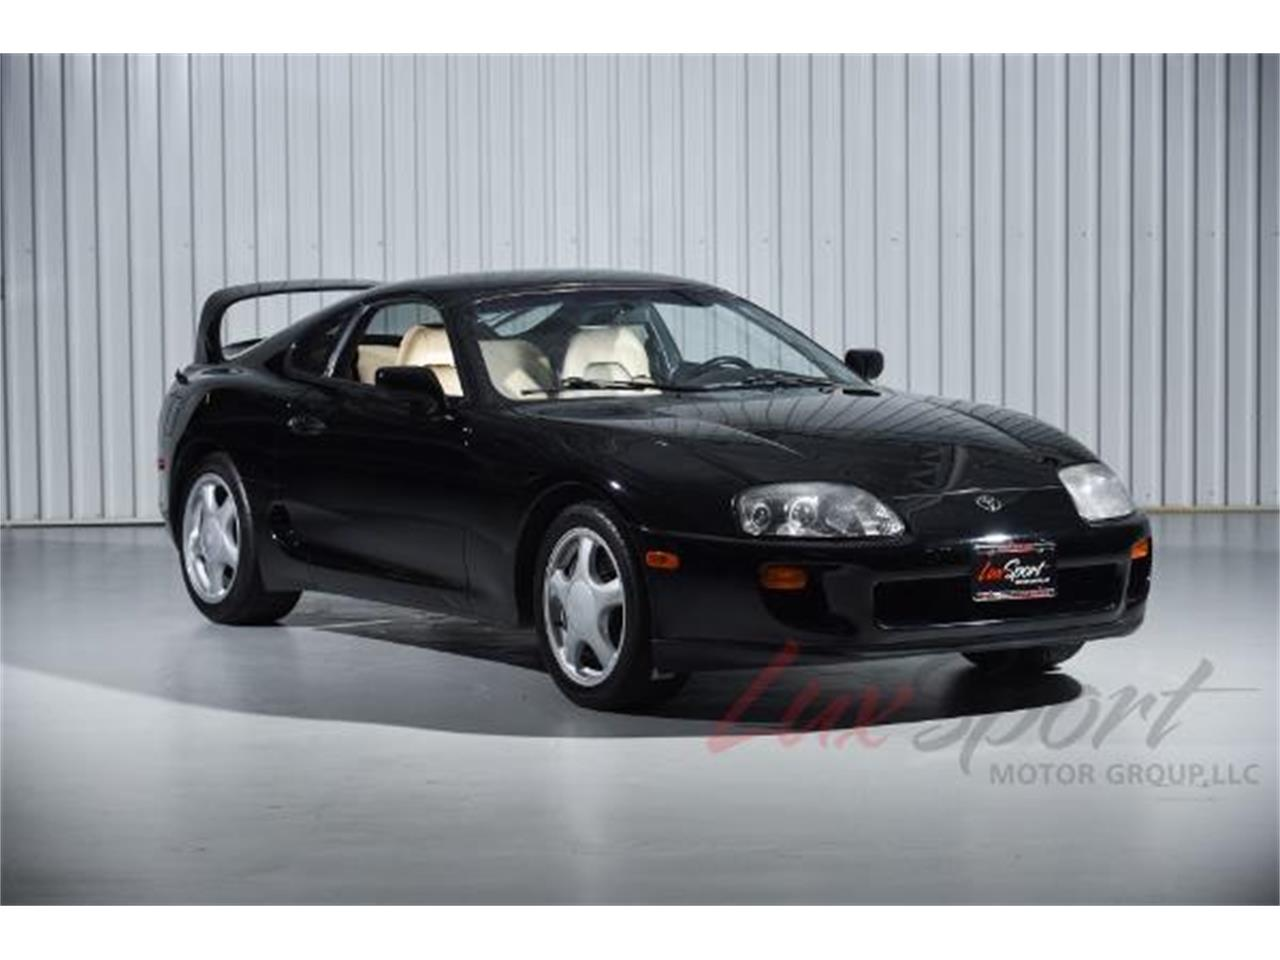 Large Picture of '94 Supra located in New Hyde Park New York Auction Vehicle Offered by LuxSport Motor Group, LLC - LRMX